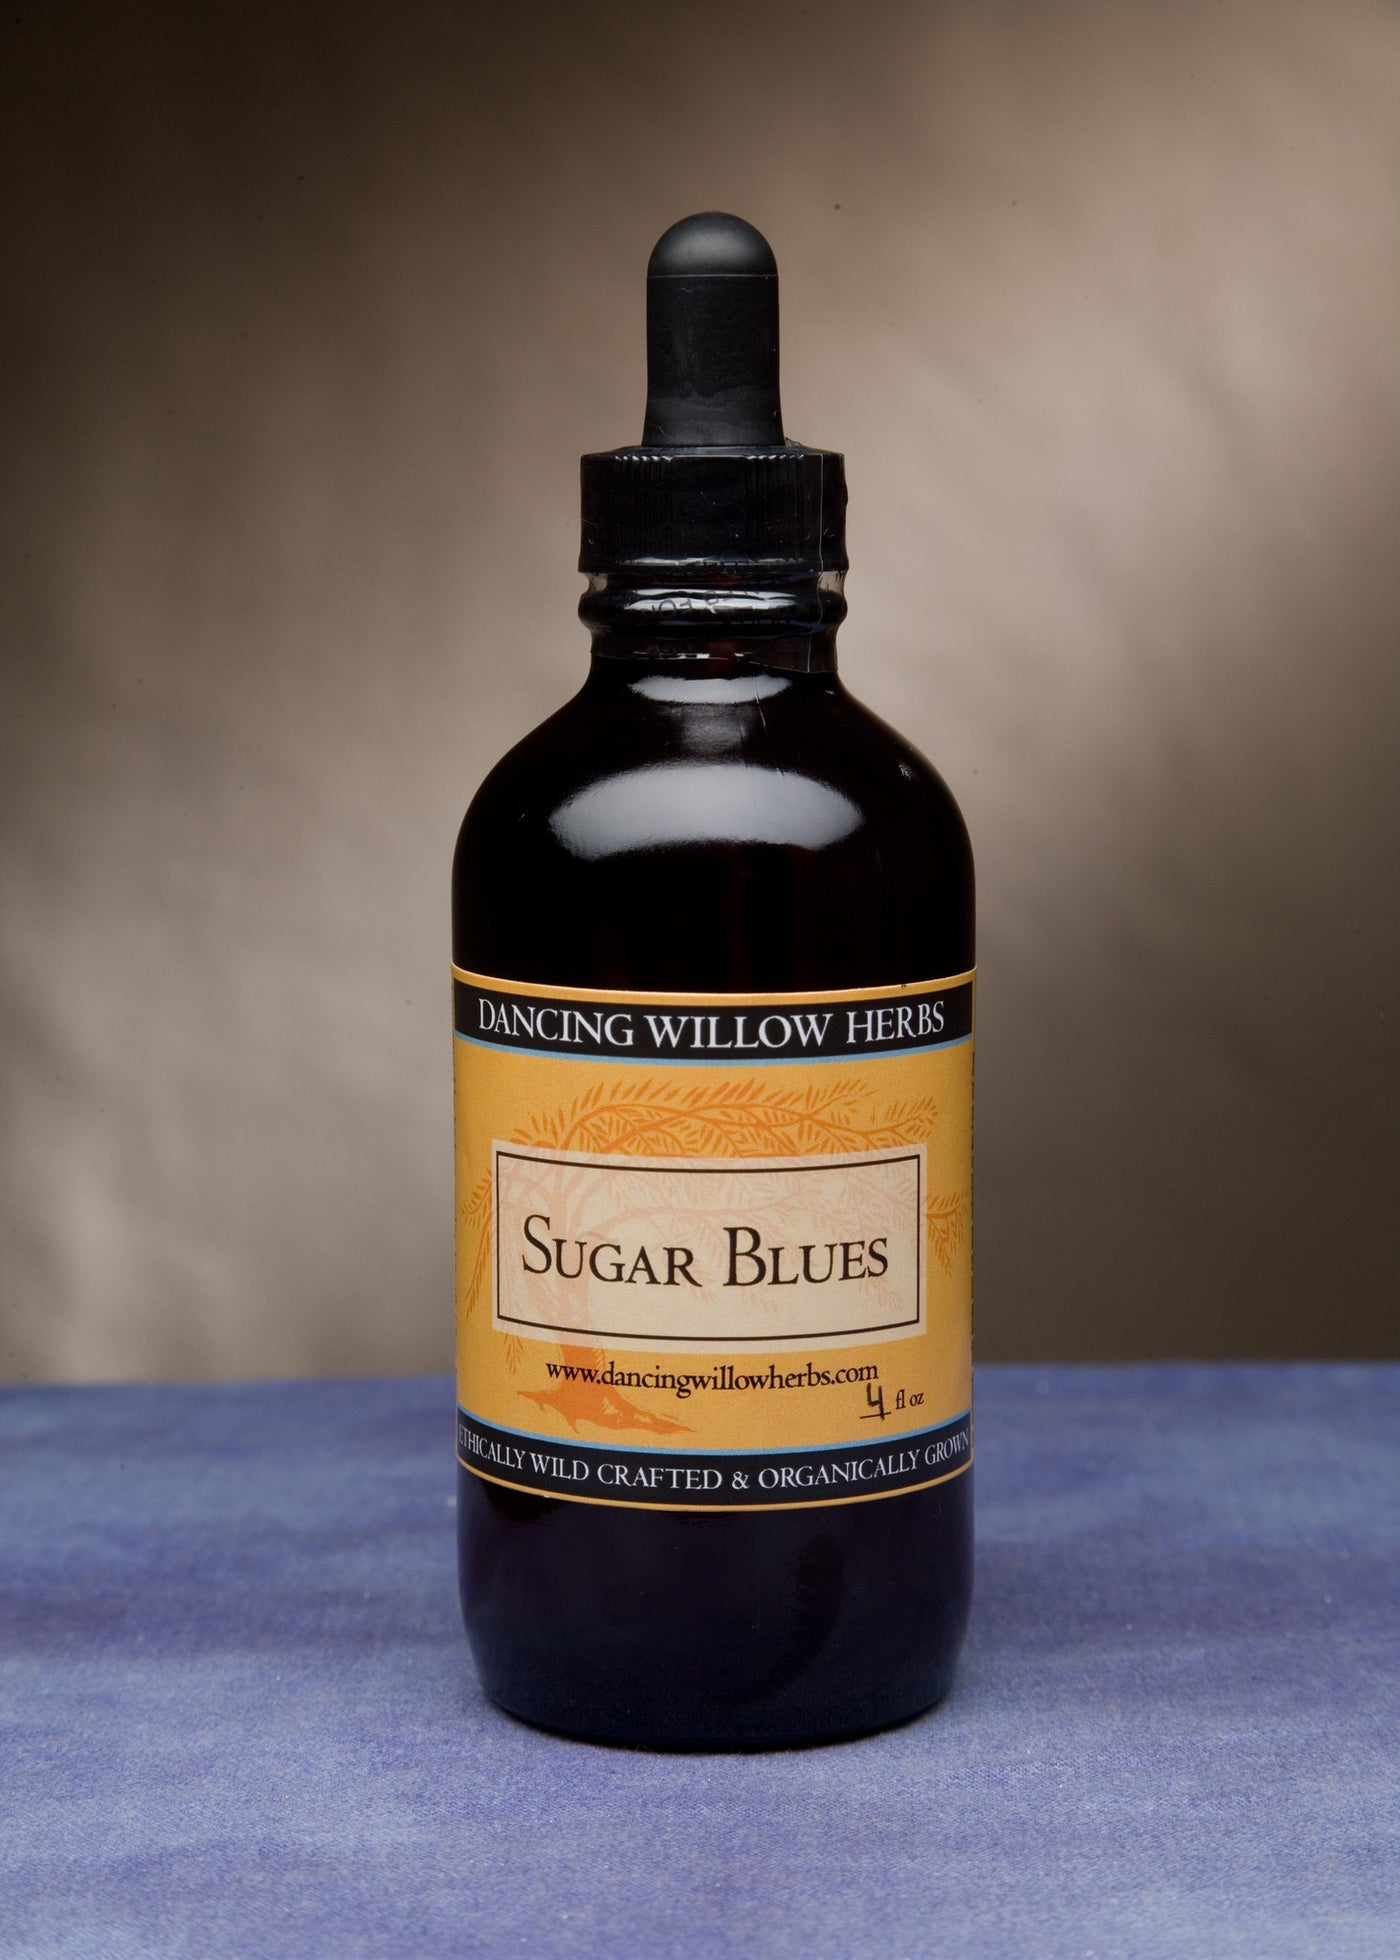 Sugar Blues - Dancing Willow Herbs Herbal Formulas - herbal formulas